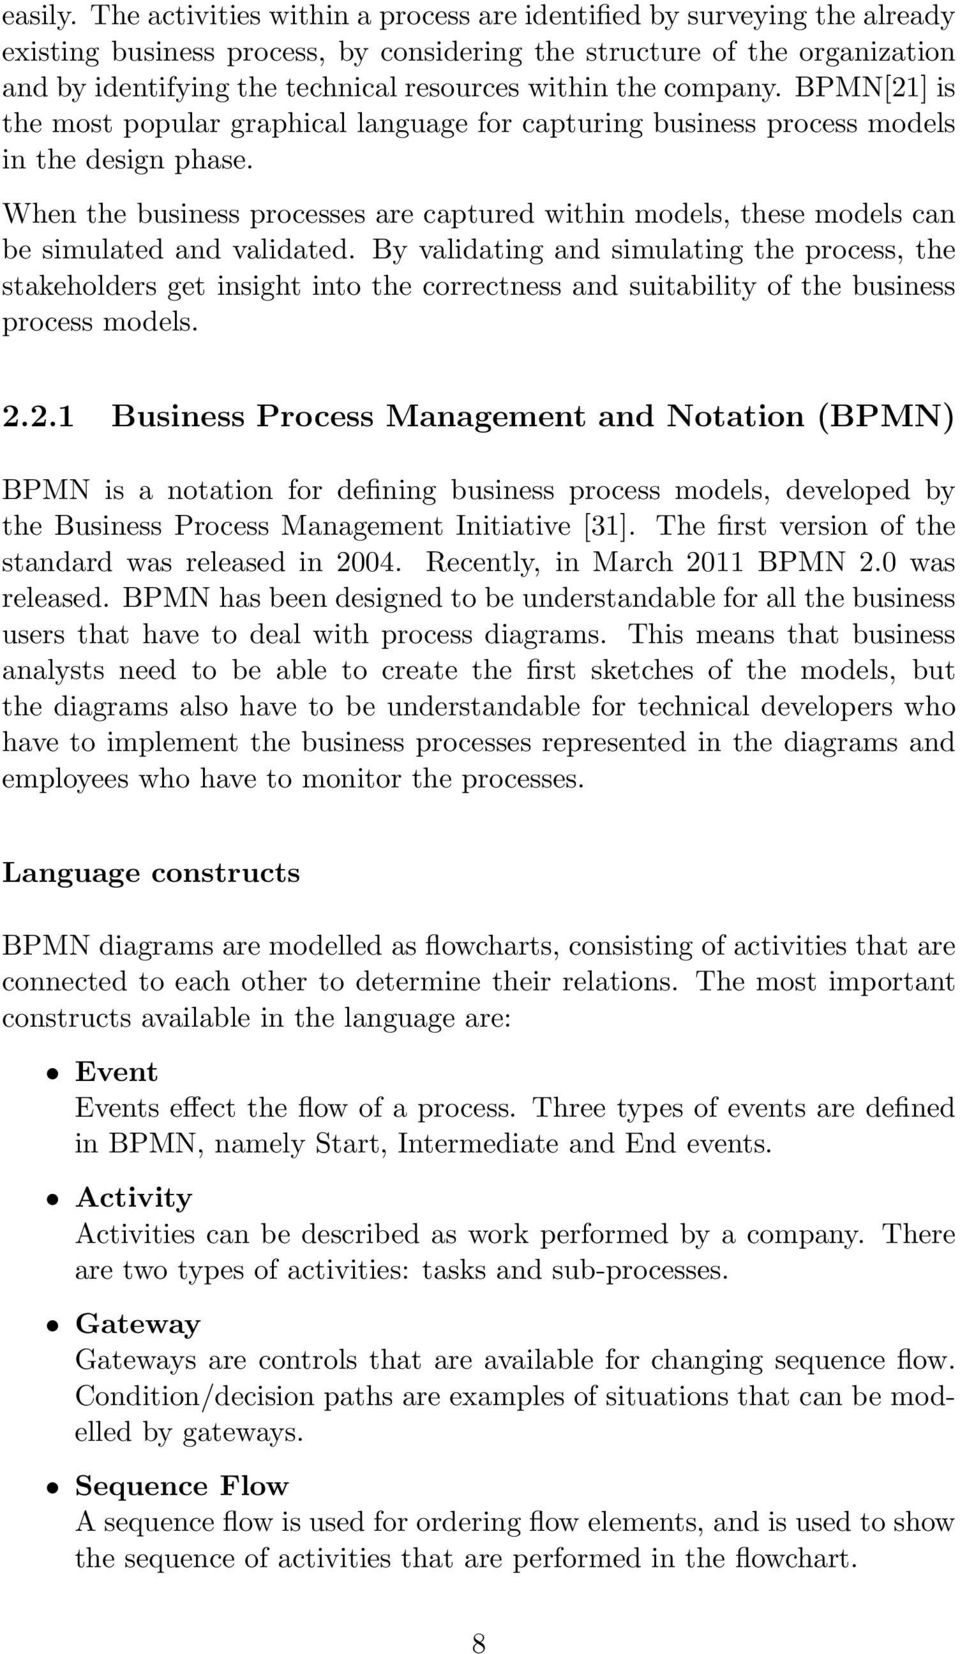 the company. BPMN[21] is the most popular graphical language for capturing business process models in the design phase.